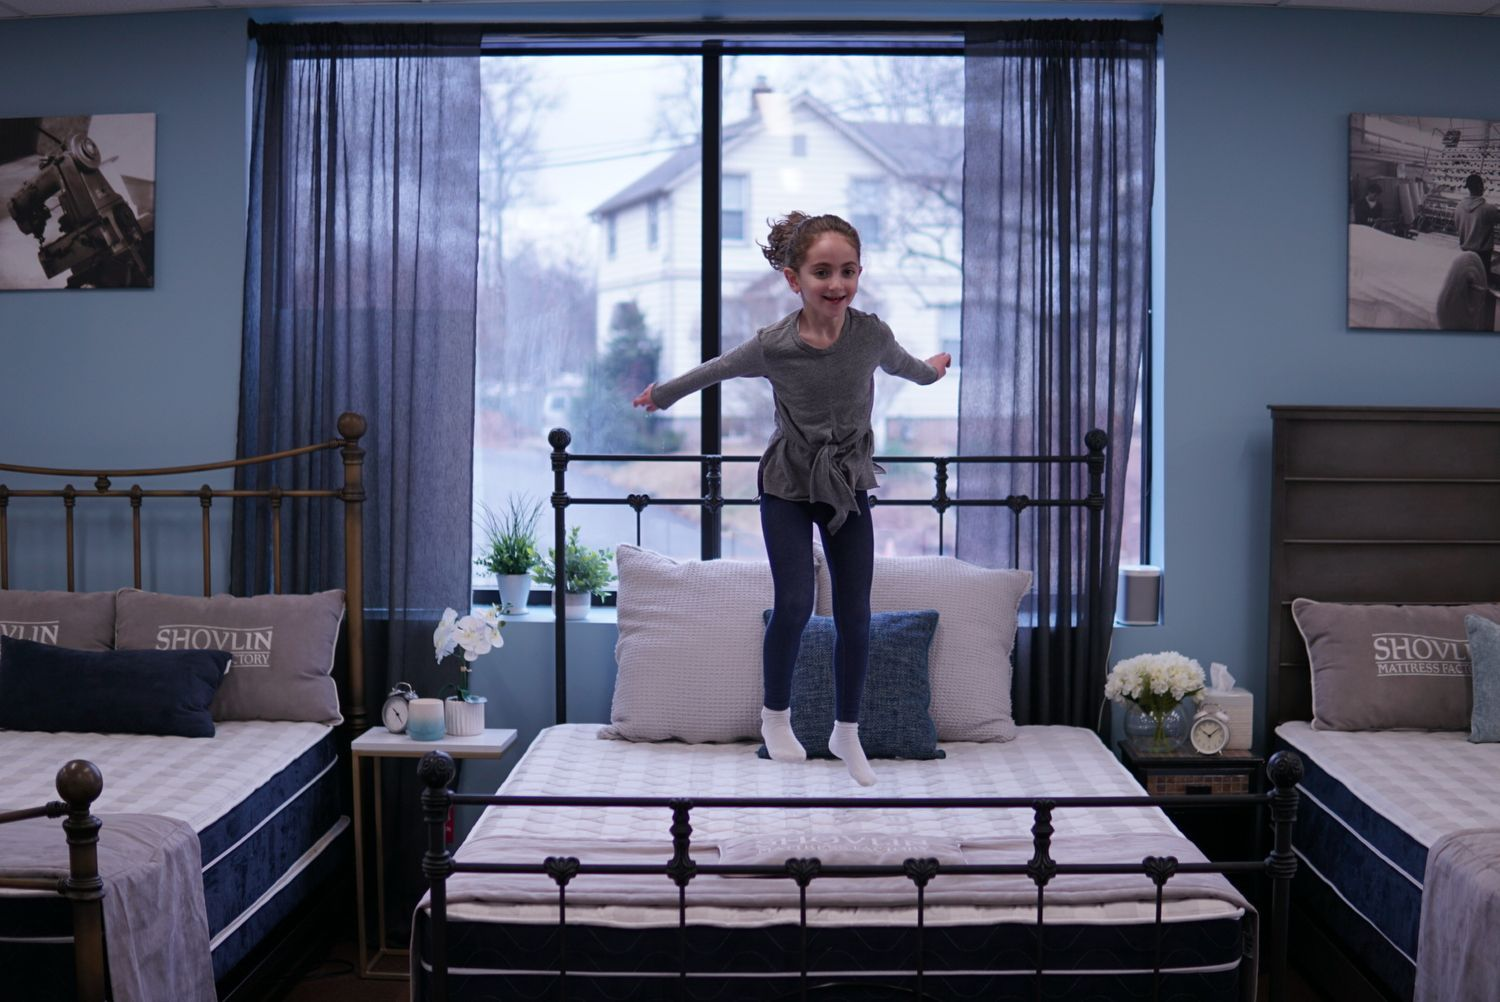 4 Reasons You Should Buy An Innerspring Mattress in 2020